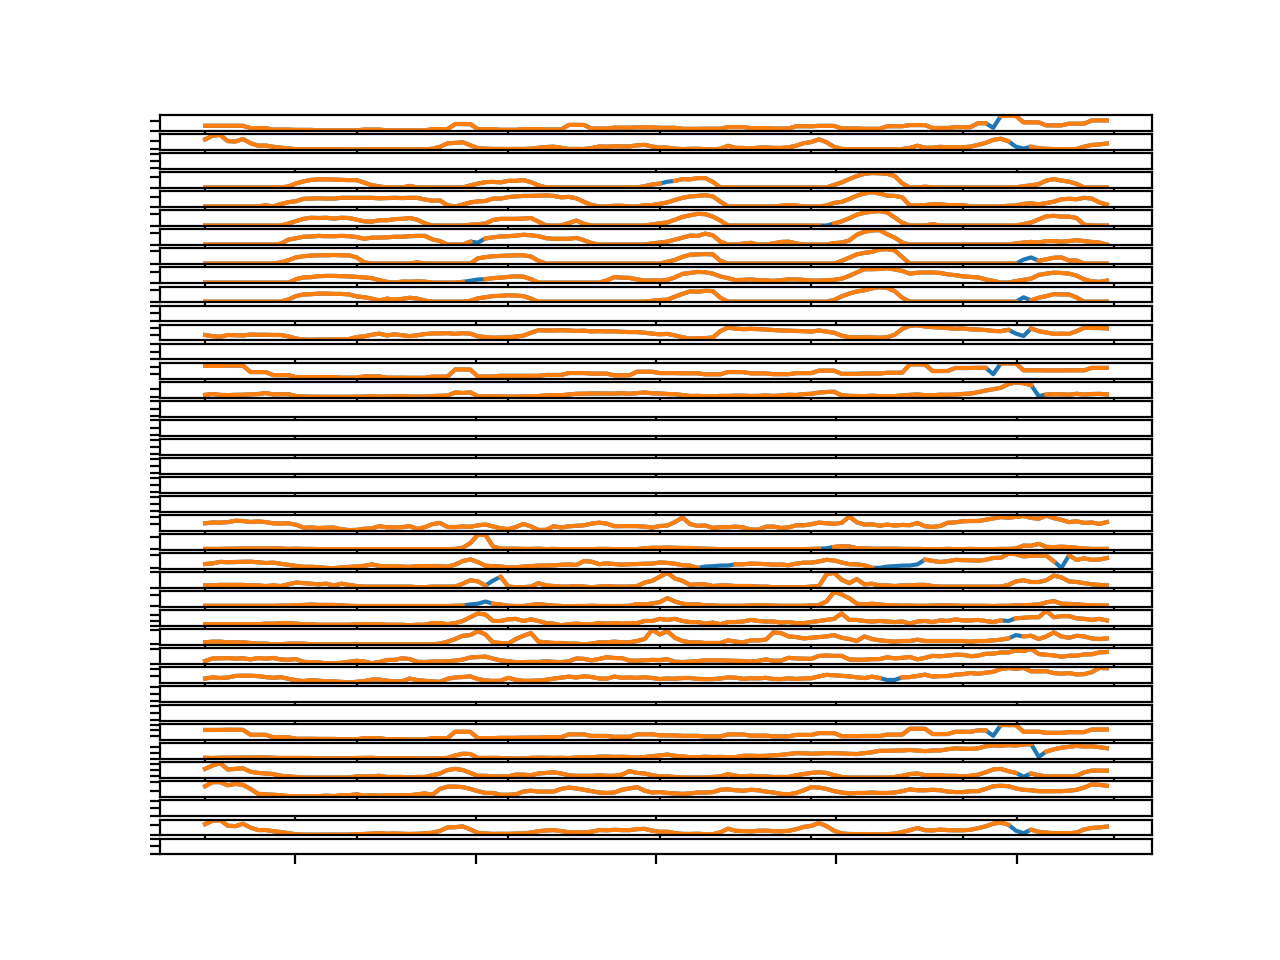 Line Plots for All Targets in Chunk 1 With Imputed Missing Values